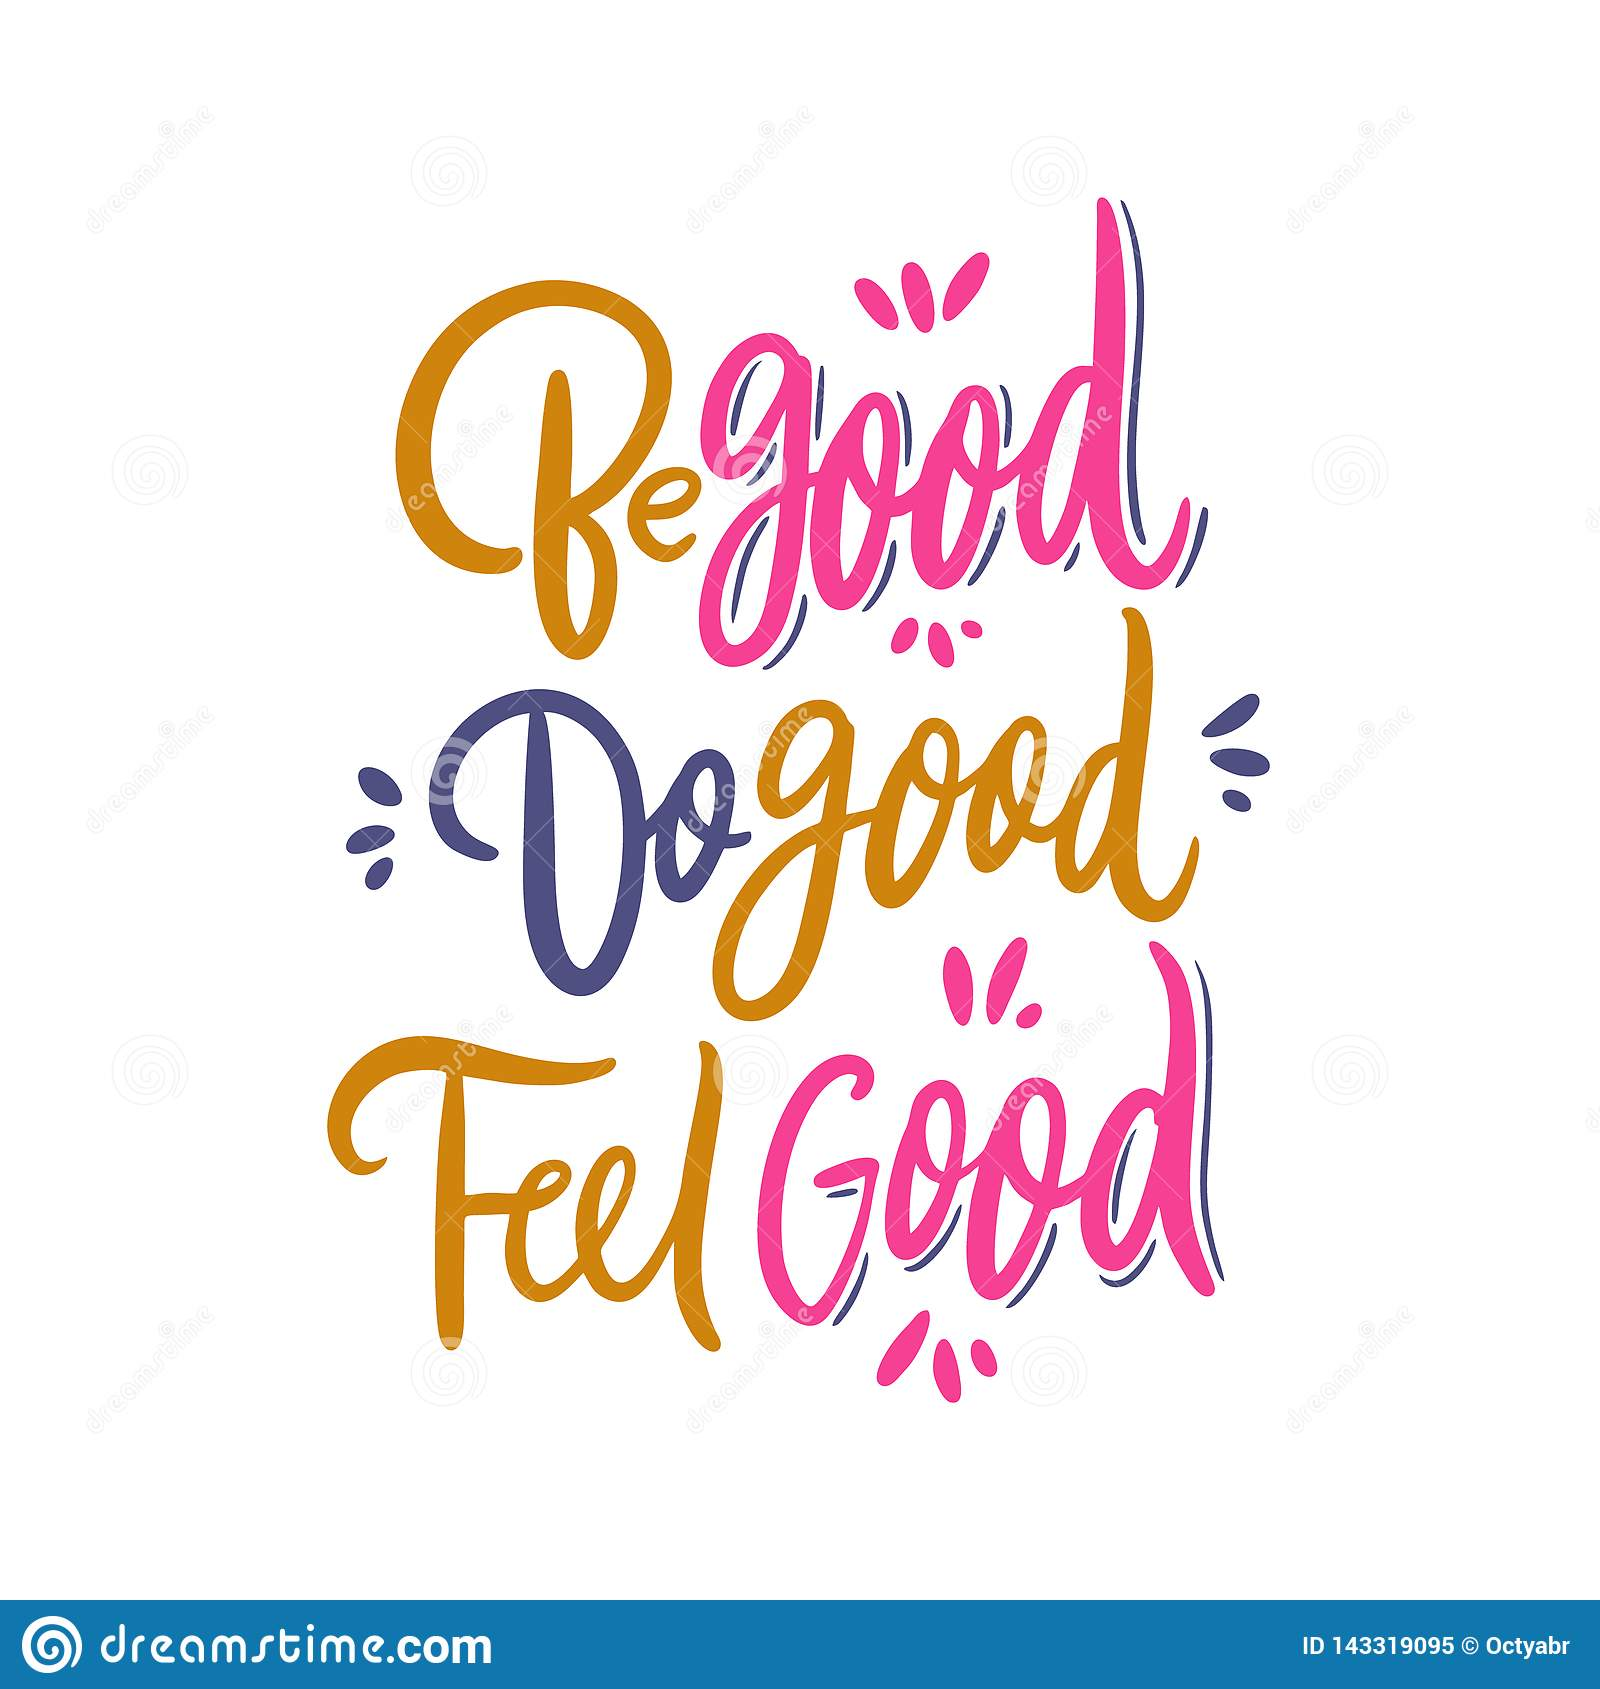 Be Good Do Good Feel Good Hand Drawn Vector Lettering Motivational Inspirational Quote Stock Illustration Illustration Of Concept Graphic 143319095